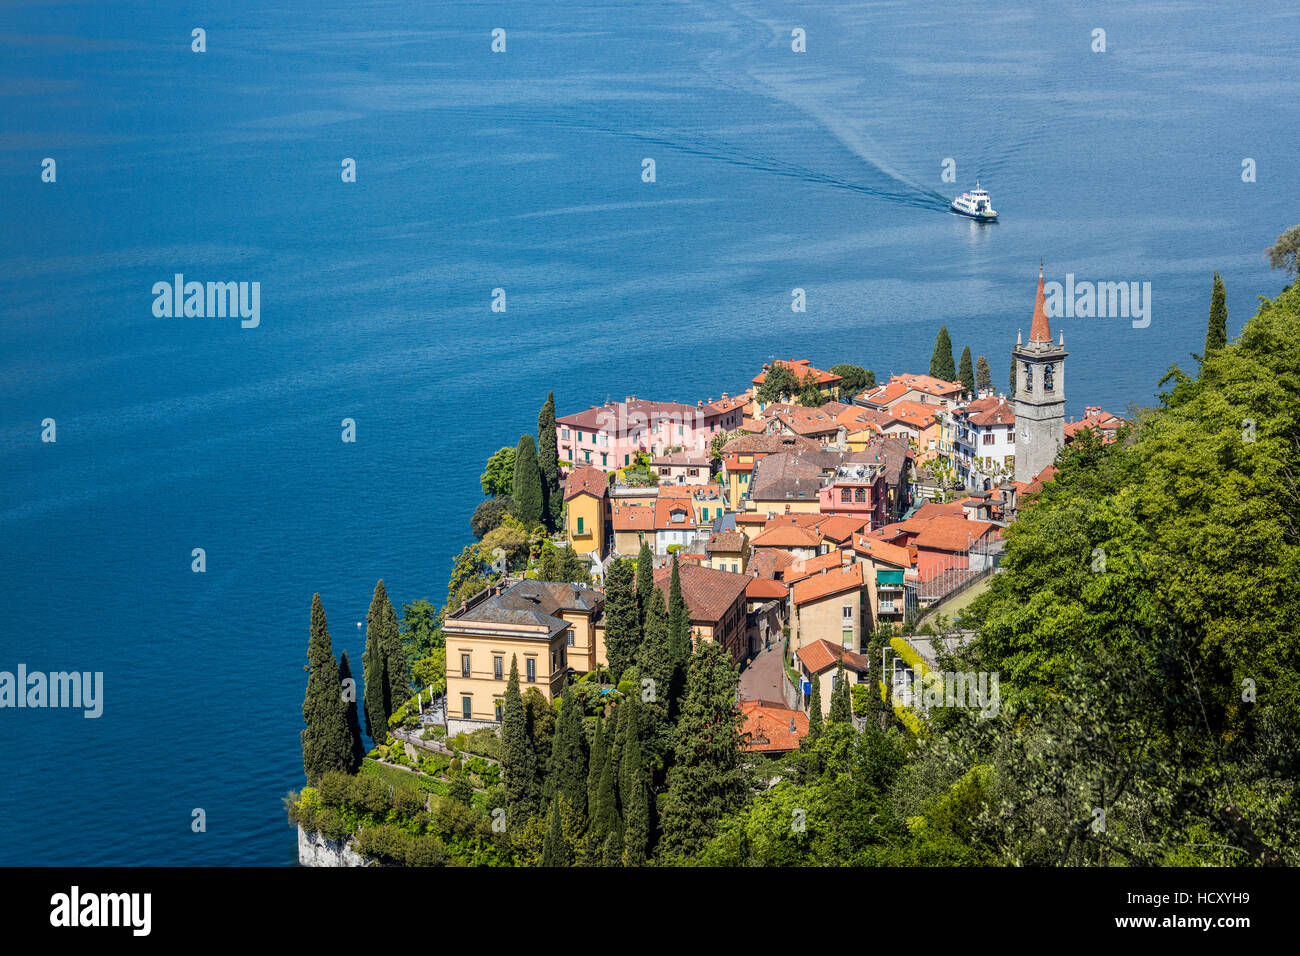 The typical village of Varenna surrounded by the blue water of Lake Como and gardens, Province of Lecco, Lombardy, - Stock Image